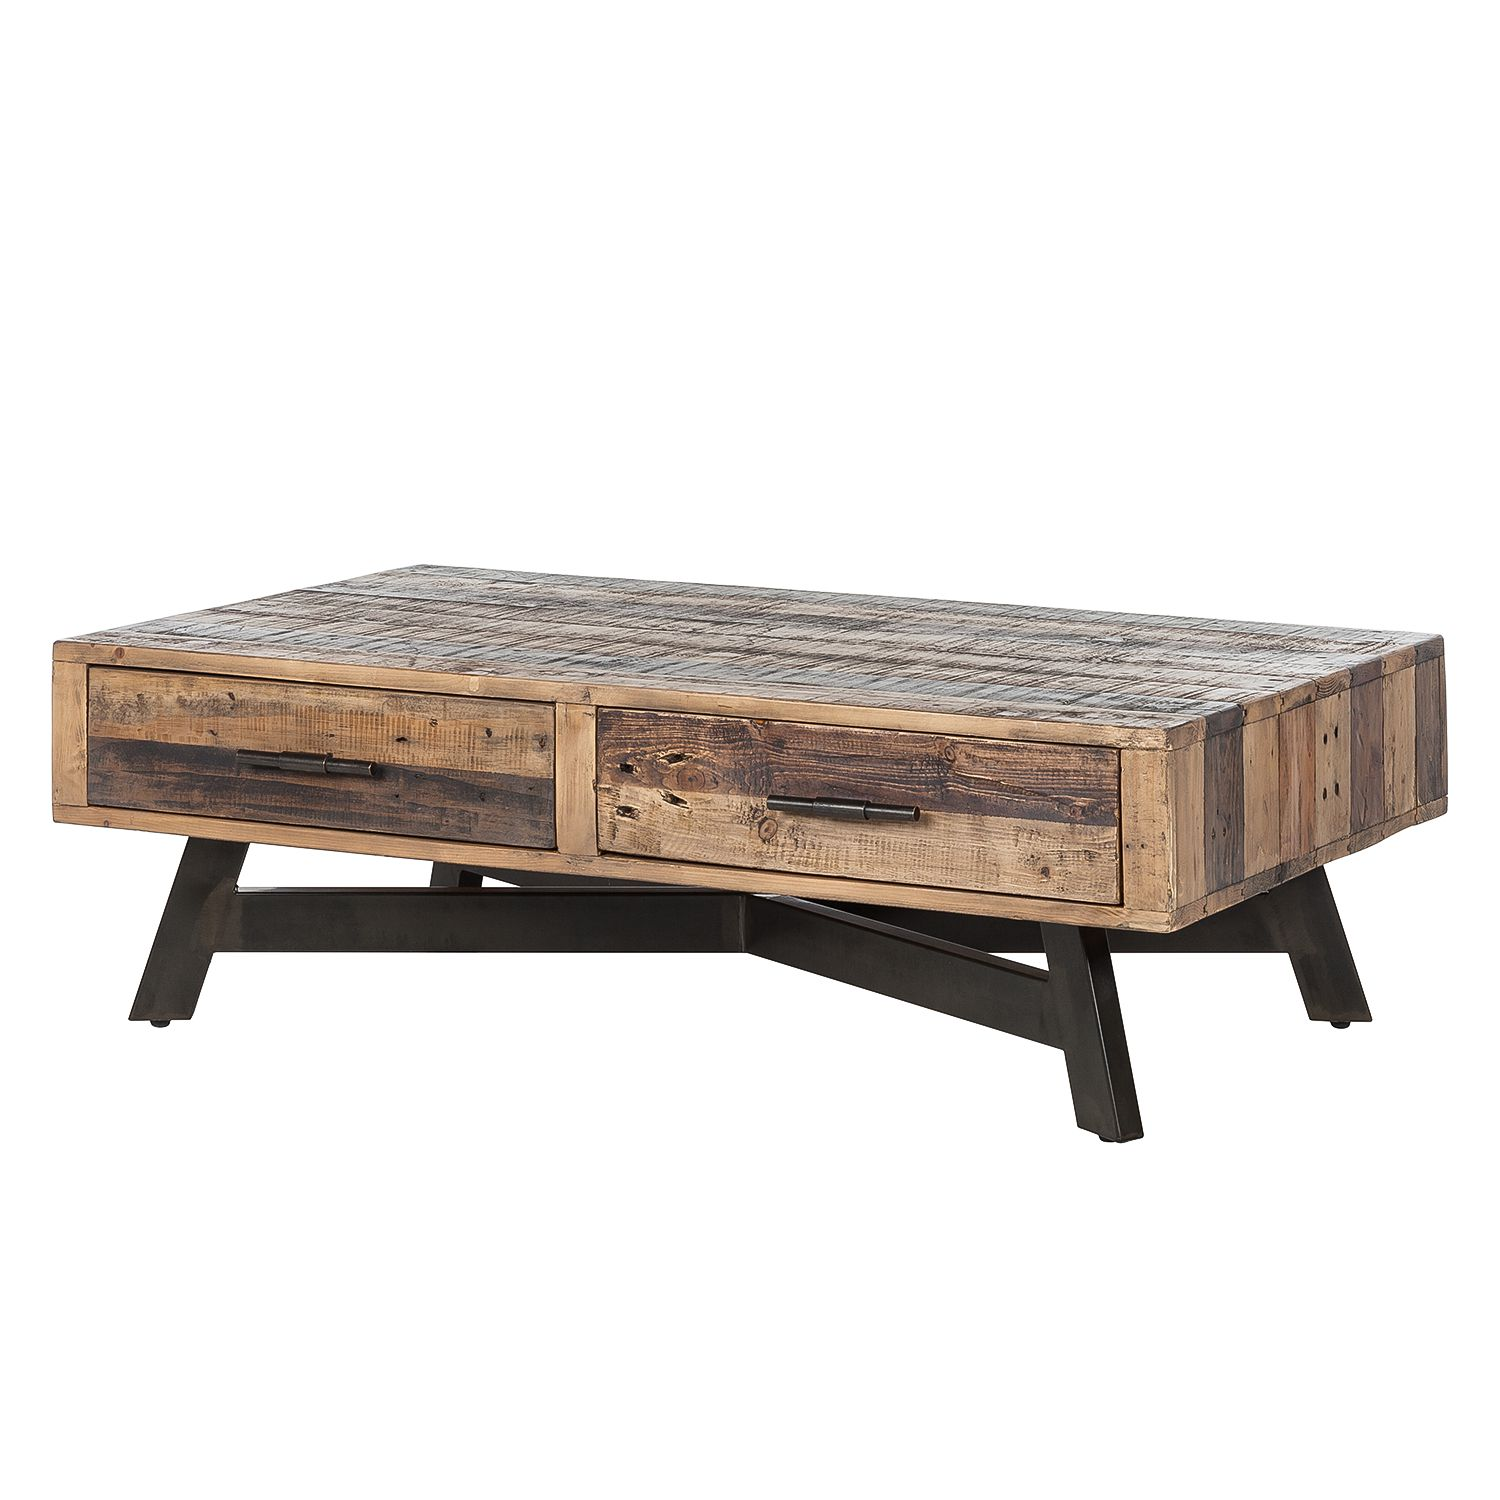 Table basse Tamati - Pin massif, ars manufacti